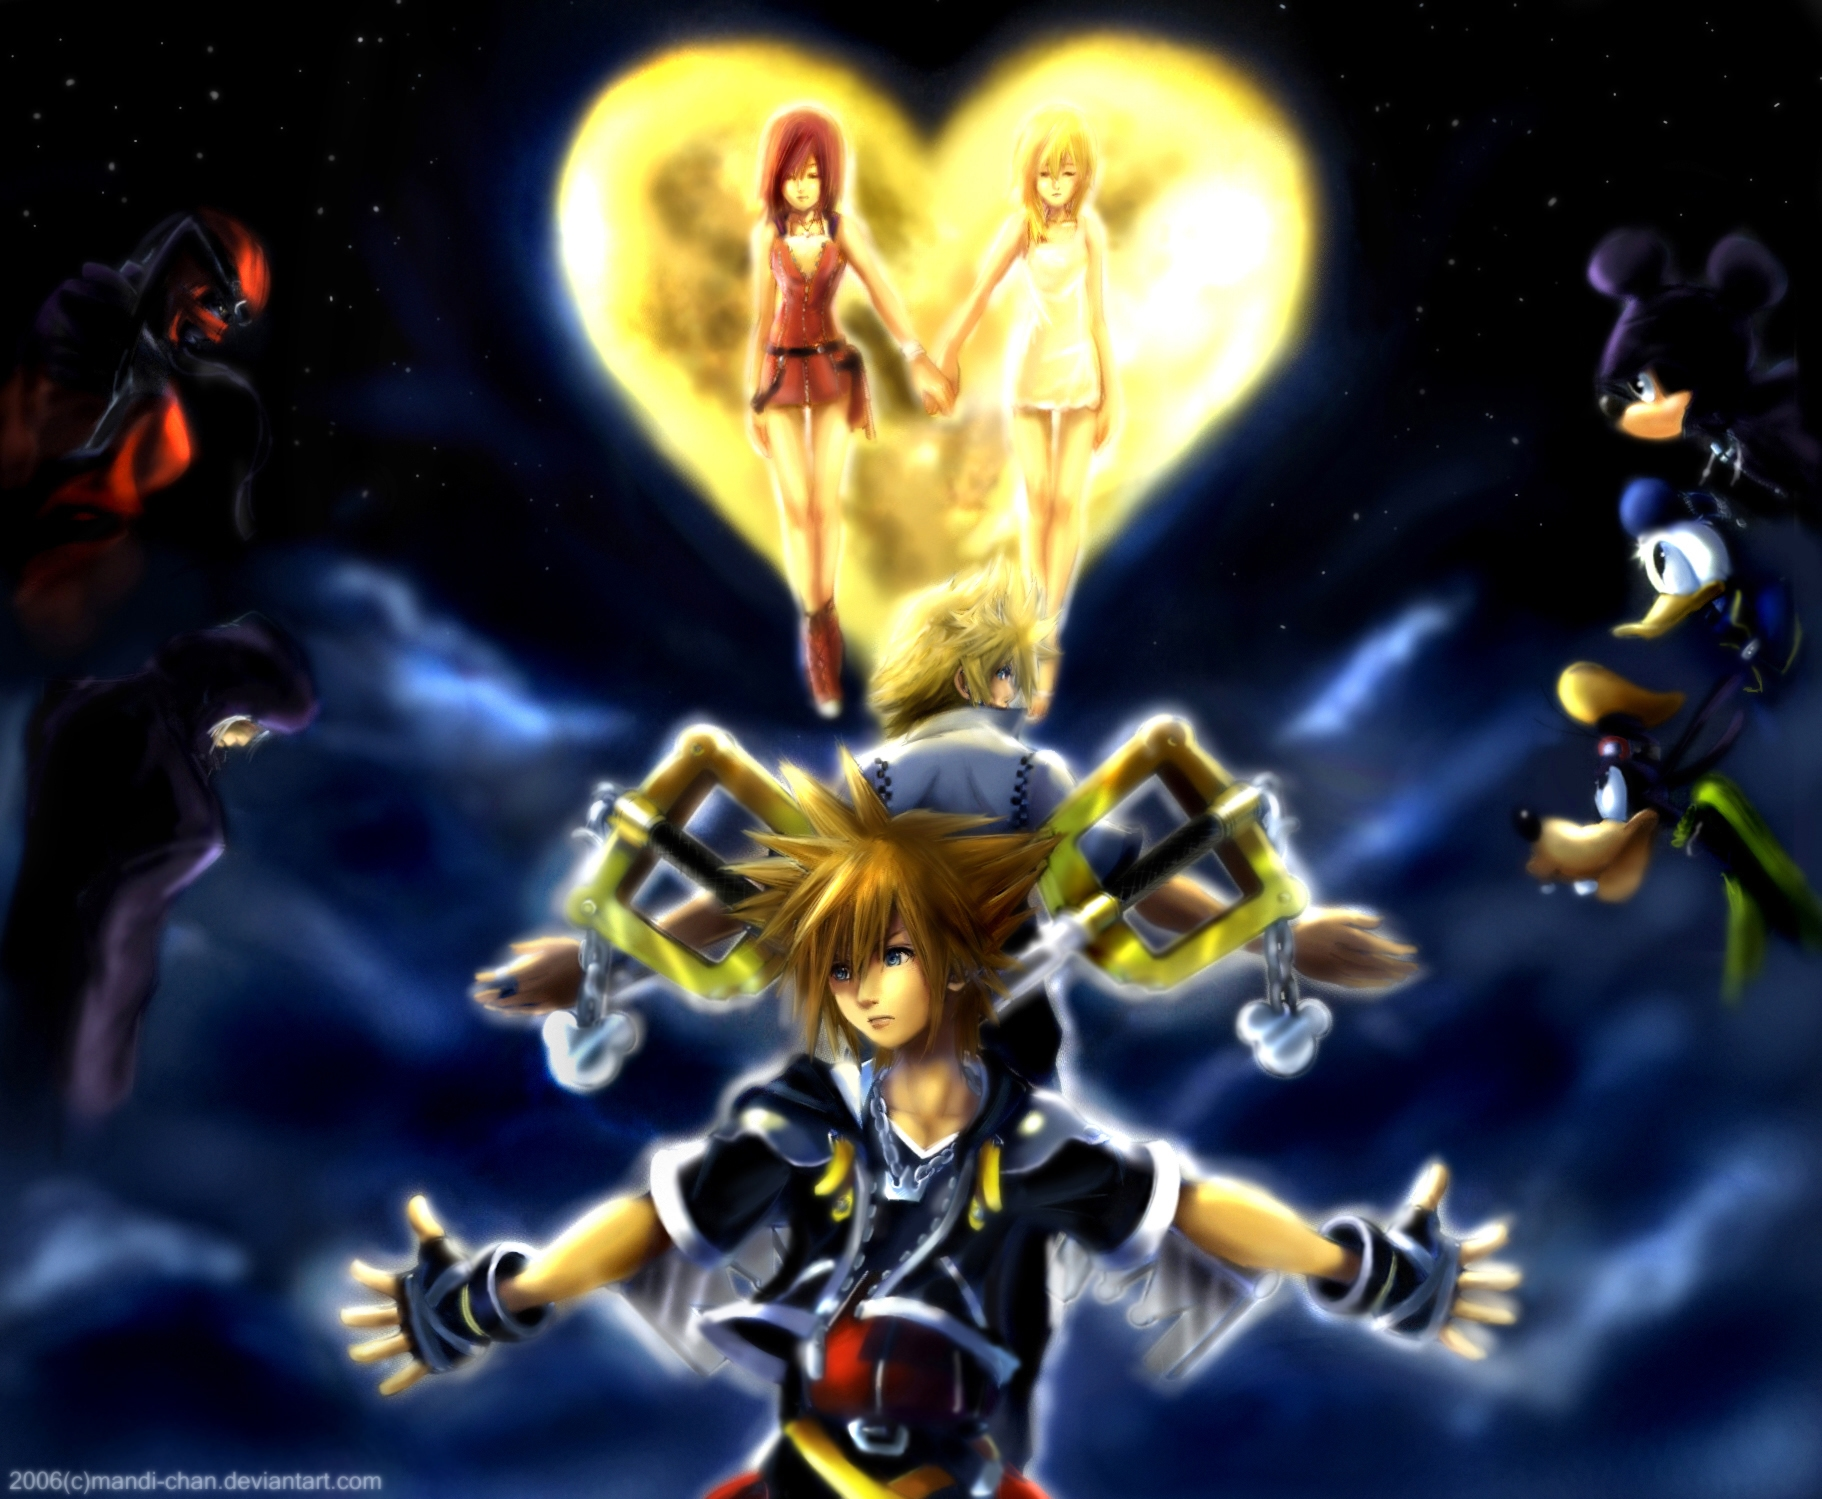 kingdom hearts wallpaper  HD Photo Wallpaper Collection HD WALLPAPERS 1822x1499